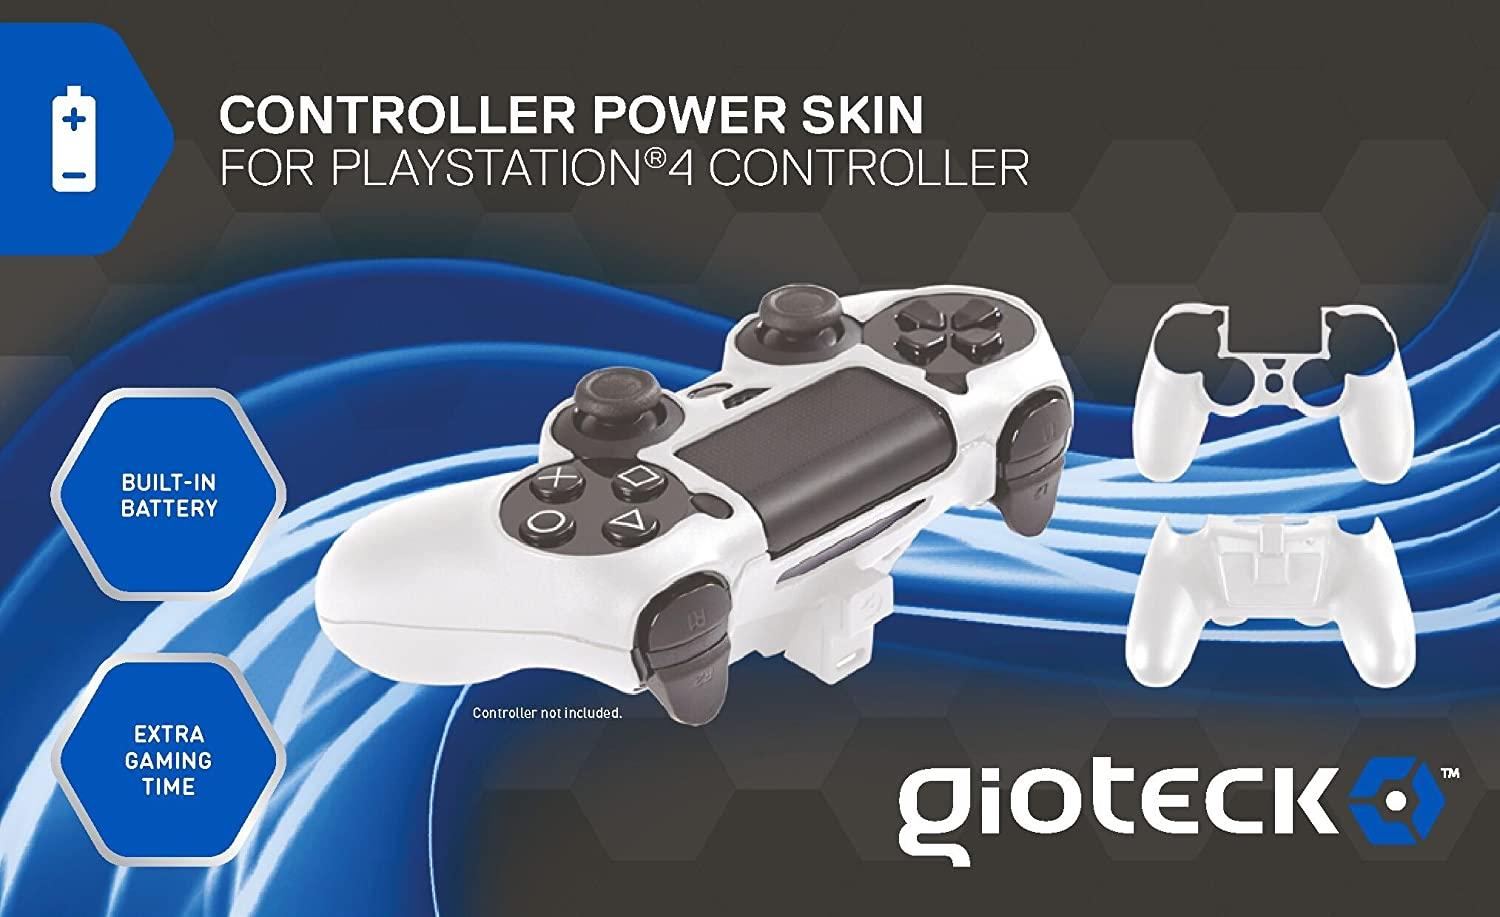 Gioteck - Controller Power Skin, Batería Incorporada, Color Blanco (PlayStation 4): Amazon.es: Videojuegos